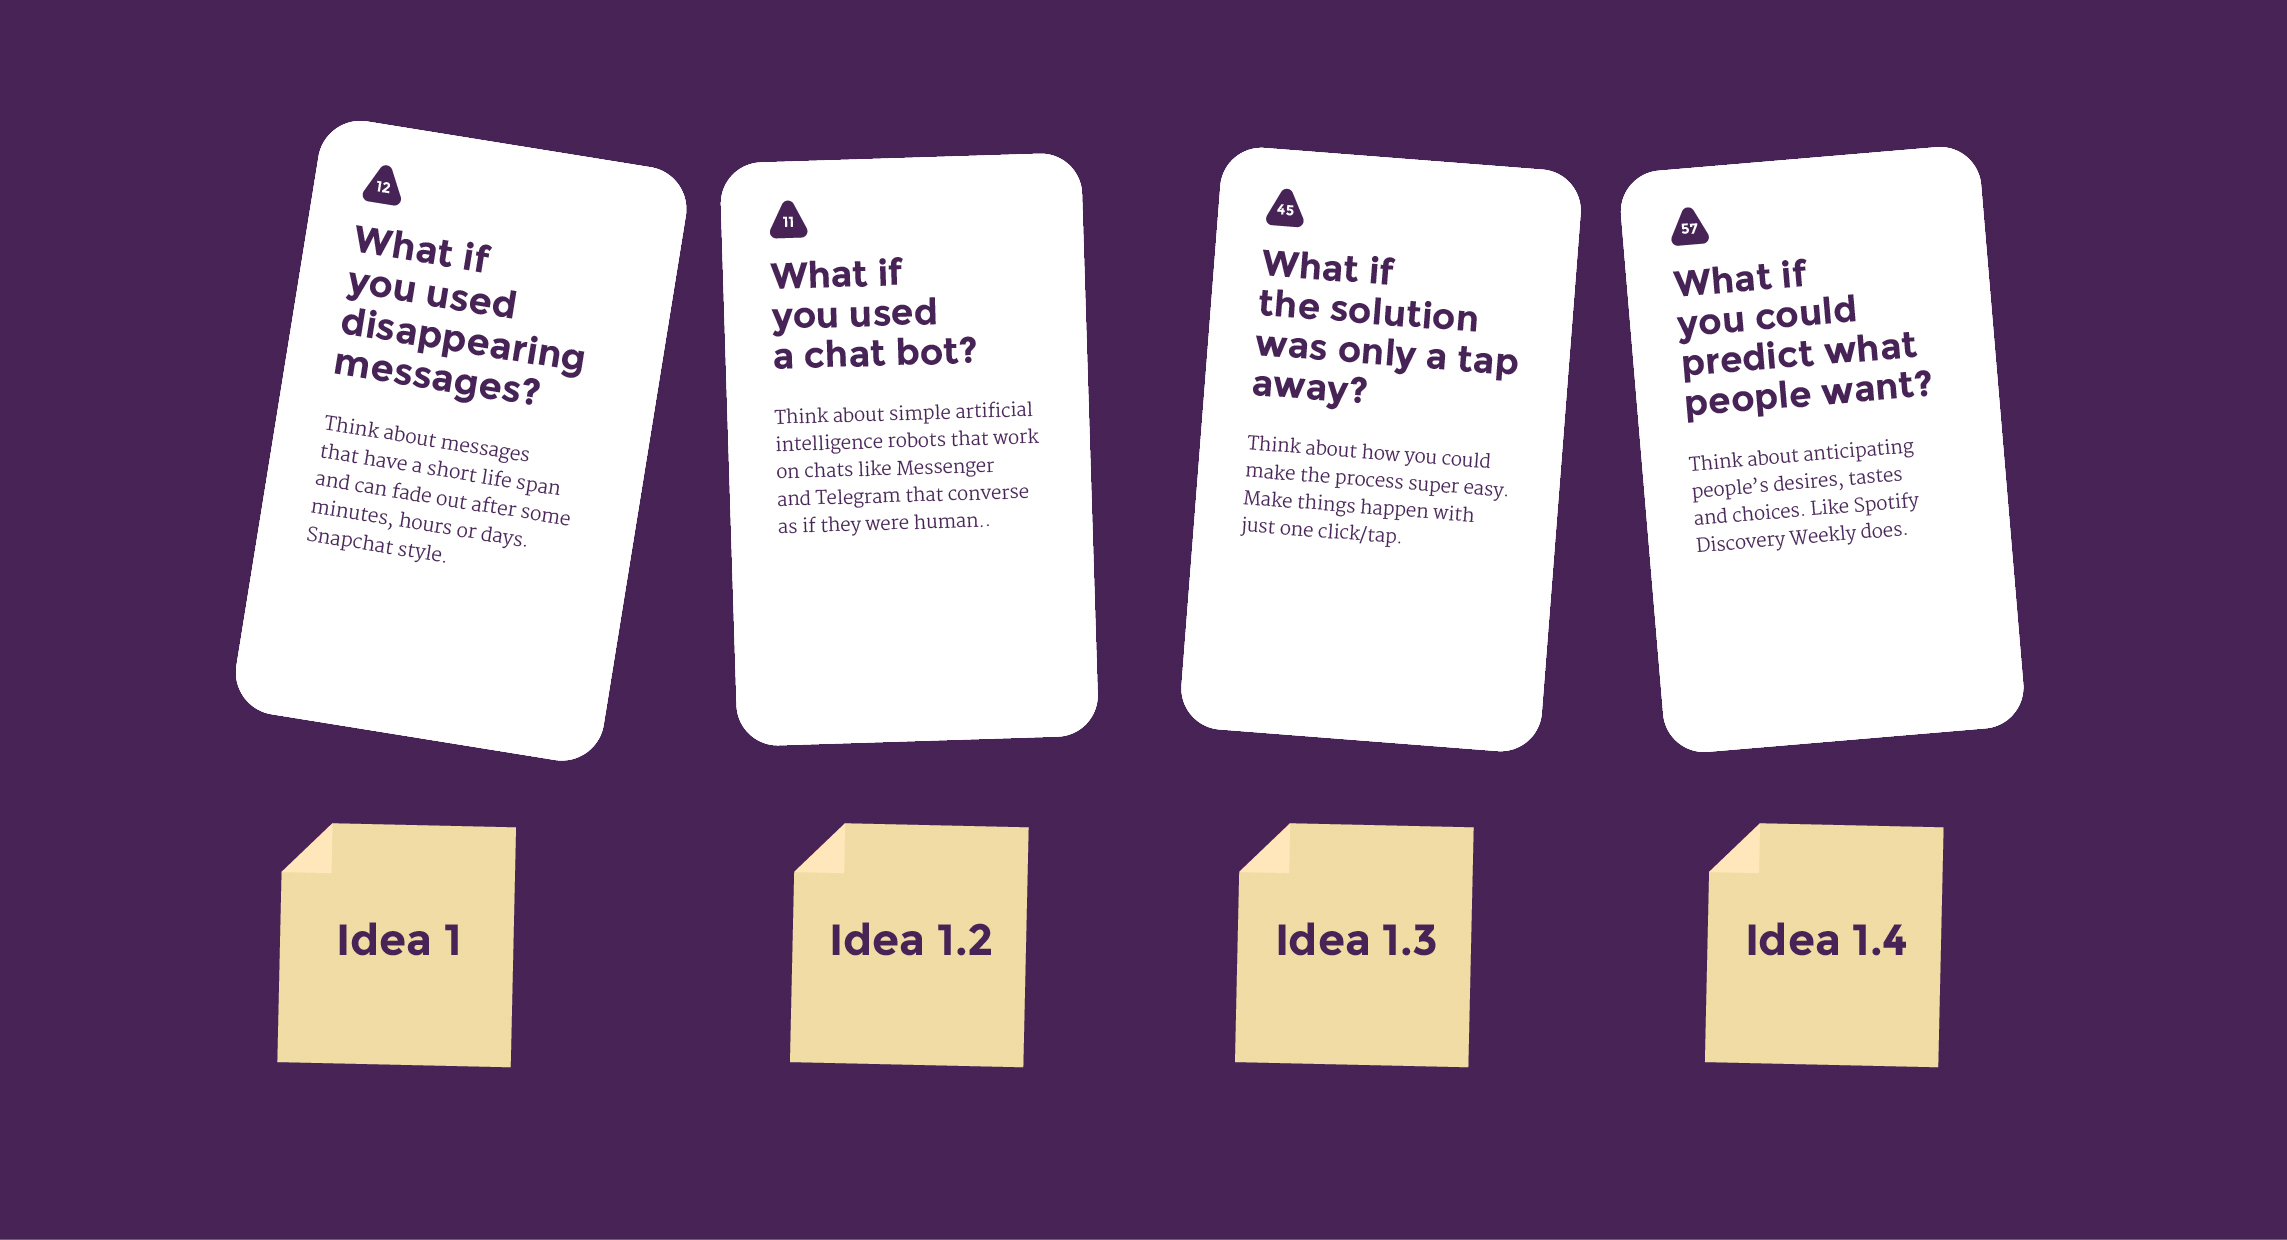 Get your idea to the next level with this idea development method